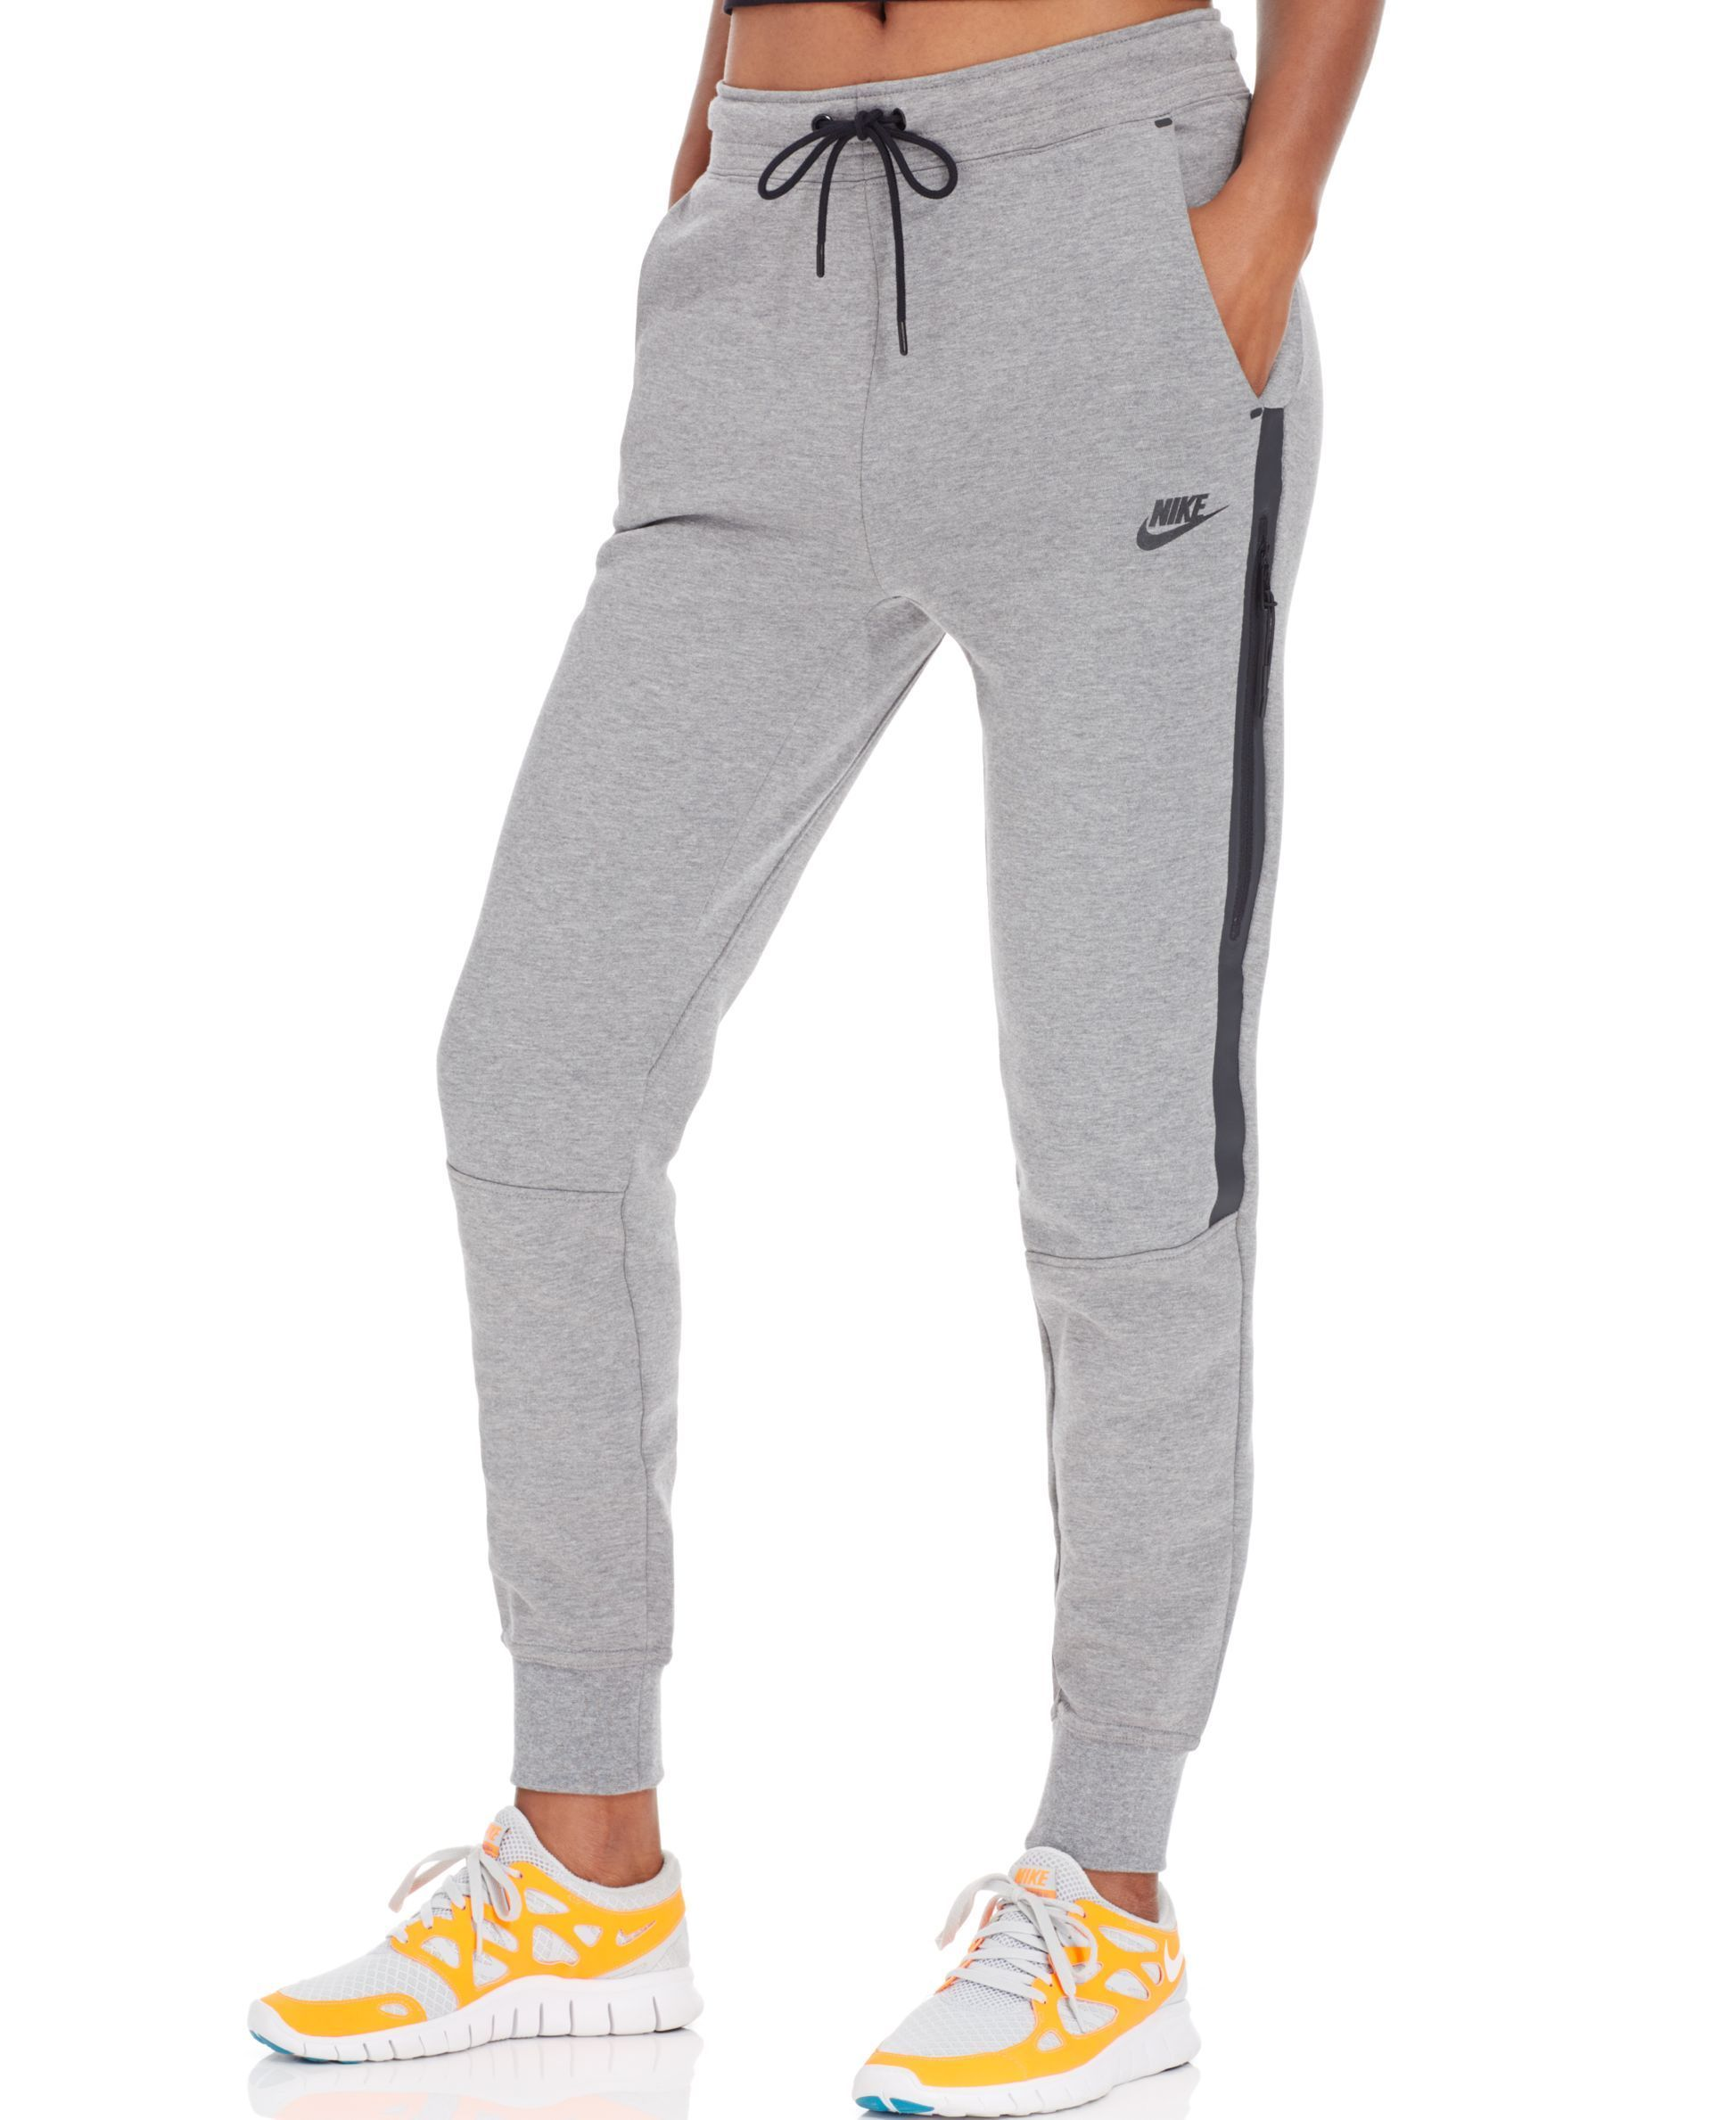 9f905c828aa3 Nike Tech Fleece Sweatpants - Pants - Women - Macys